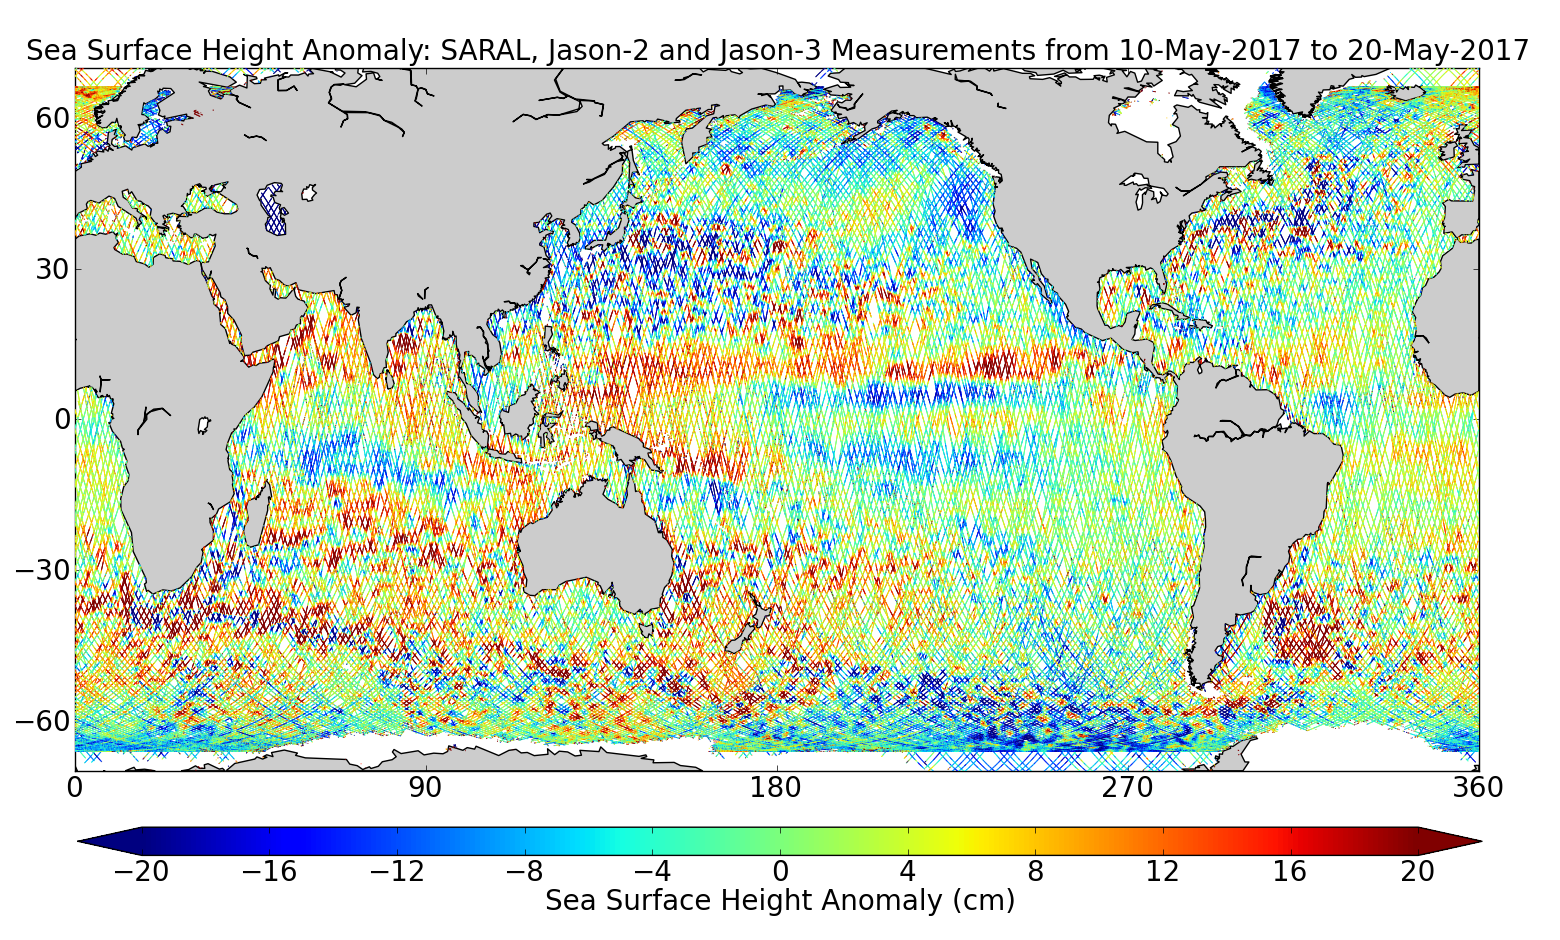 Sea Surface Height Anomaly: SARAL, Jason-2 and Jason-3 Measurements from 10-May-2017 to 20-May-2017